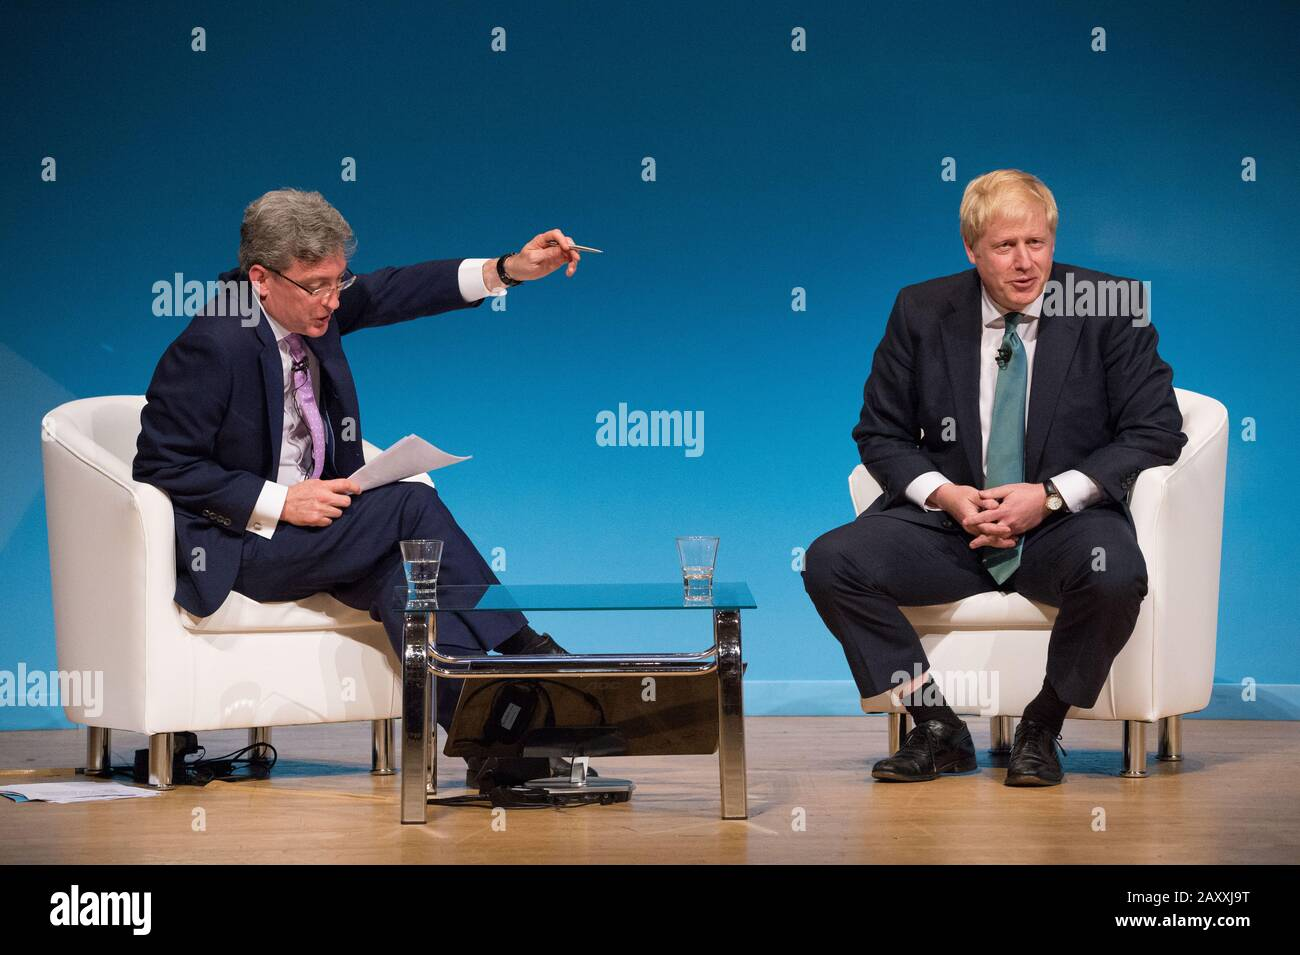 Perth, UK. 5 July 2019.  PICTURED: Colin Mackay, Host and STV Political Editor (left) Boris Johnson MP (right).  Conservative leadership contenders Boris Johnson and Jeremy Hunt are to face Scottish party members at a hustings event in Perth.  The hustings in Perth is the latest in a series of events around the UK which see the two candidates make a speech to local members before taking questions from a host and the audience.  Party members should receive their ballots in the coming days, with the winner to be announced on 23 July. Stock Photo